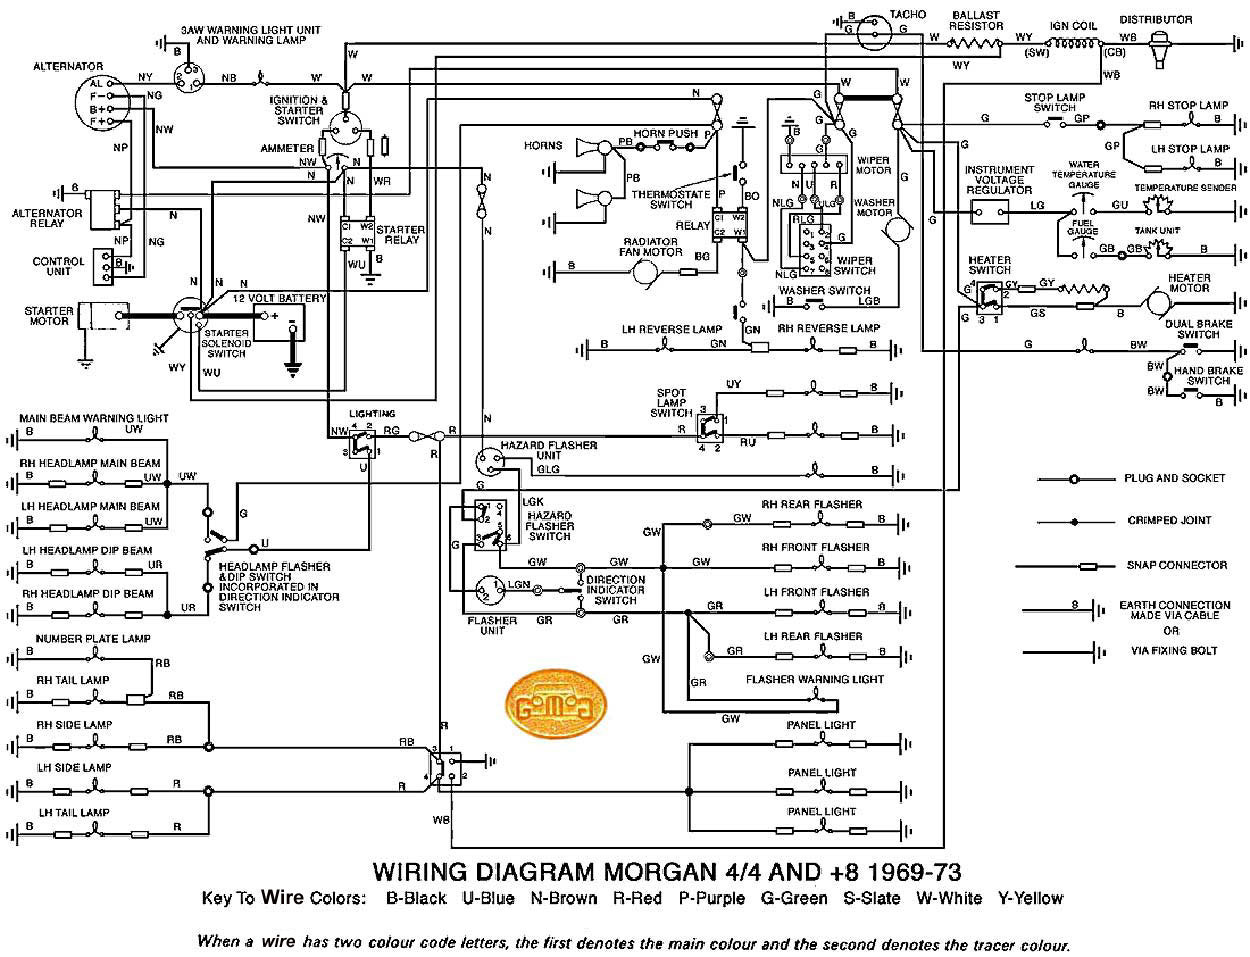 1969 Mustang Headlight Wiring Diagram : 37 Wiring Diagram